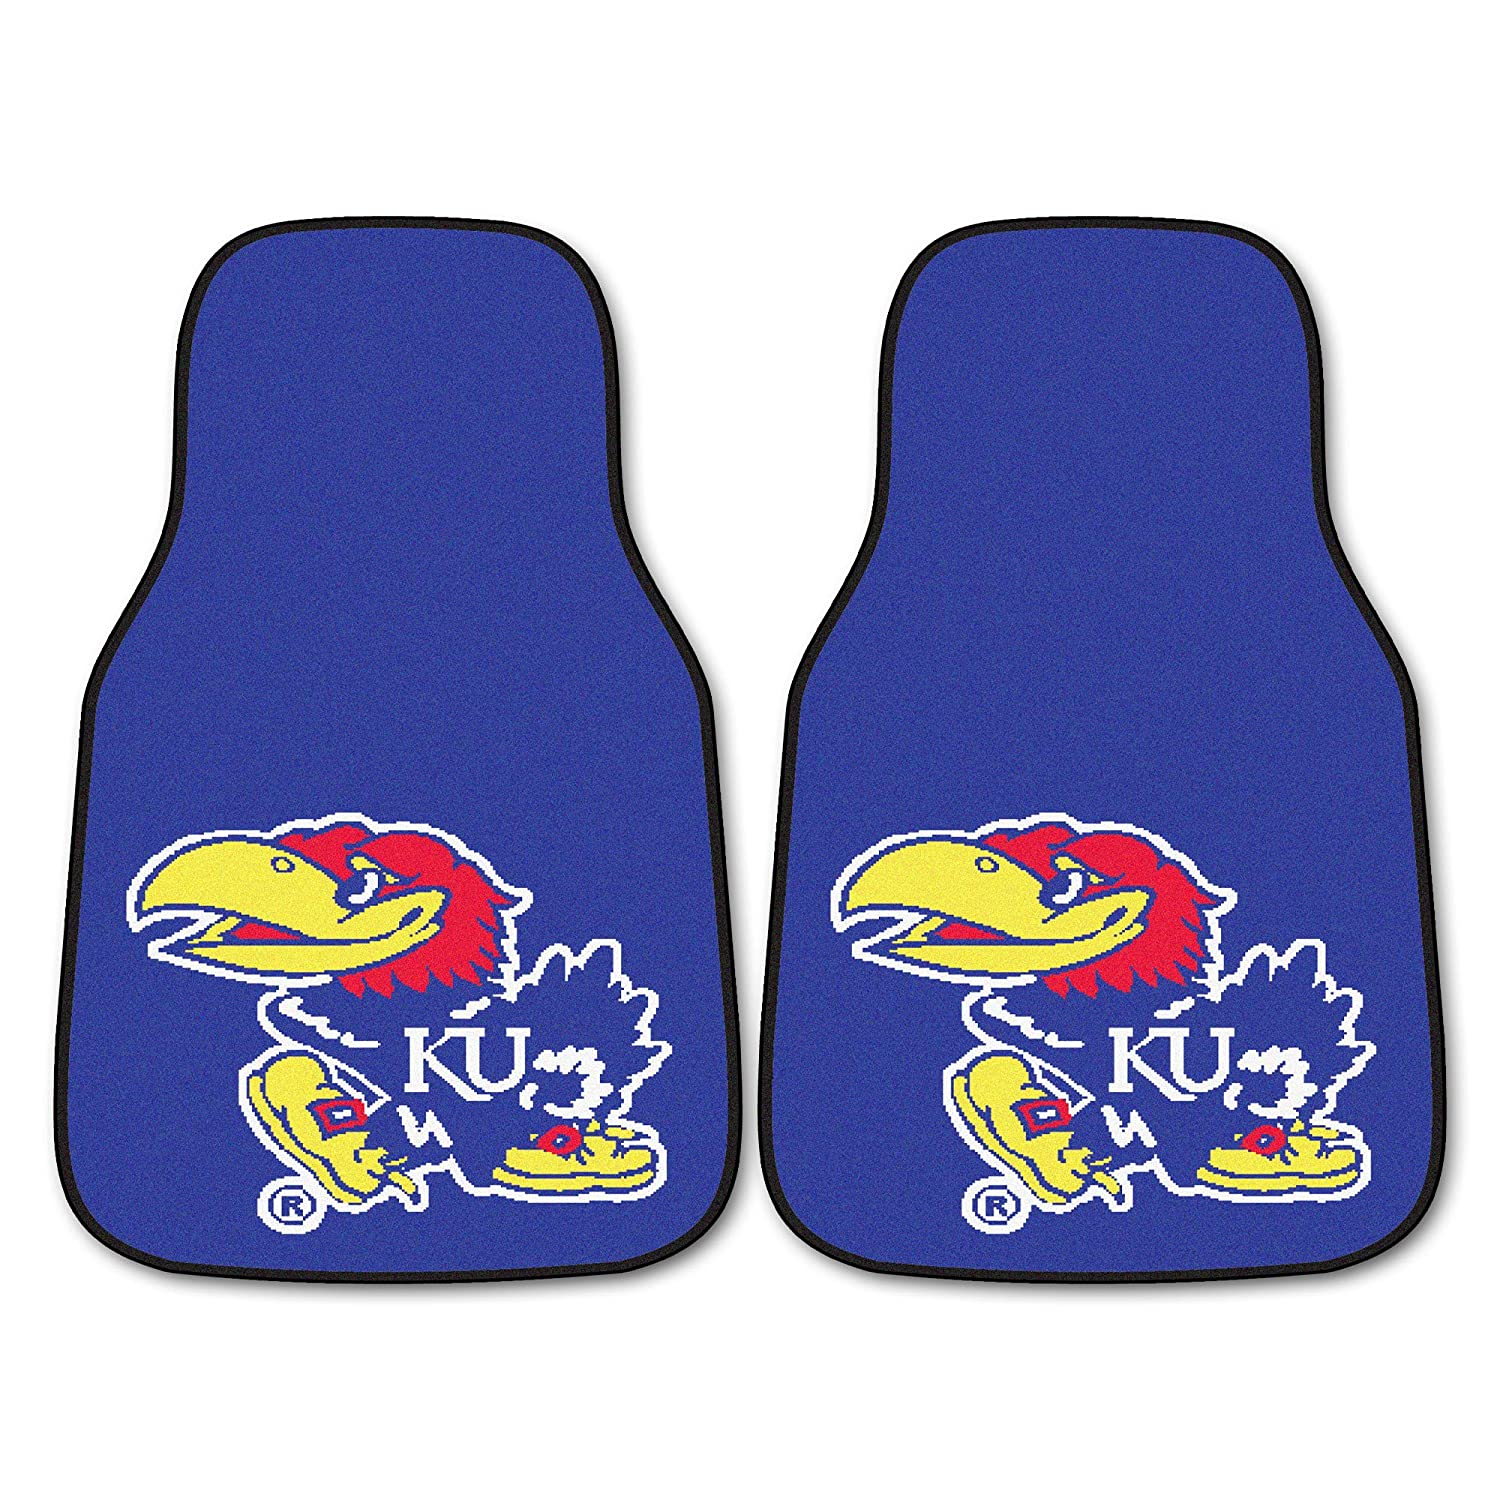 FANMATS NCAA University of Kansas Jayhawks Nylon Face Carpet Car Mat 5450